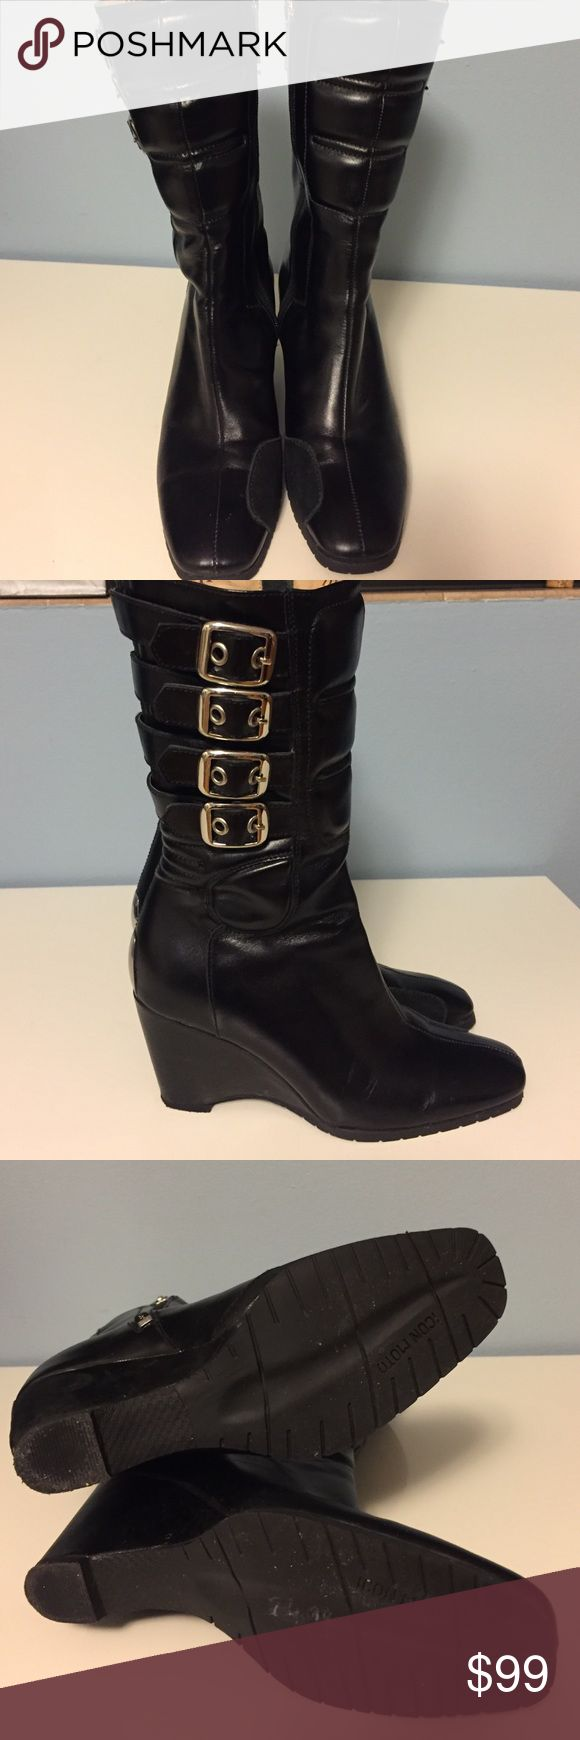 Icon Moto boots Mid-calf boots. Wedge heel, 3 inches high, very comfortable. Cool details all around the boots. Wear it with jeans or a dress. Very hip! Excellent condition! Icon Moto Shoes Combat & Moto Boots